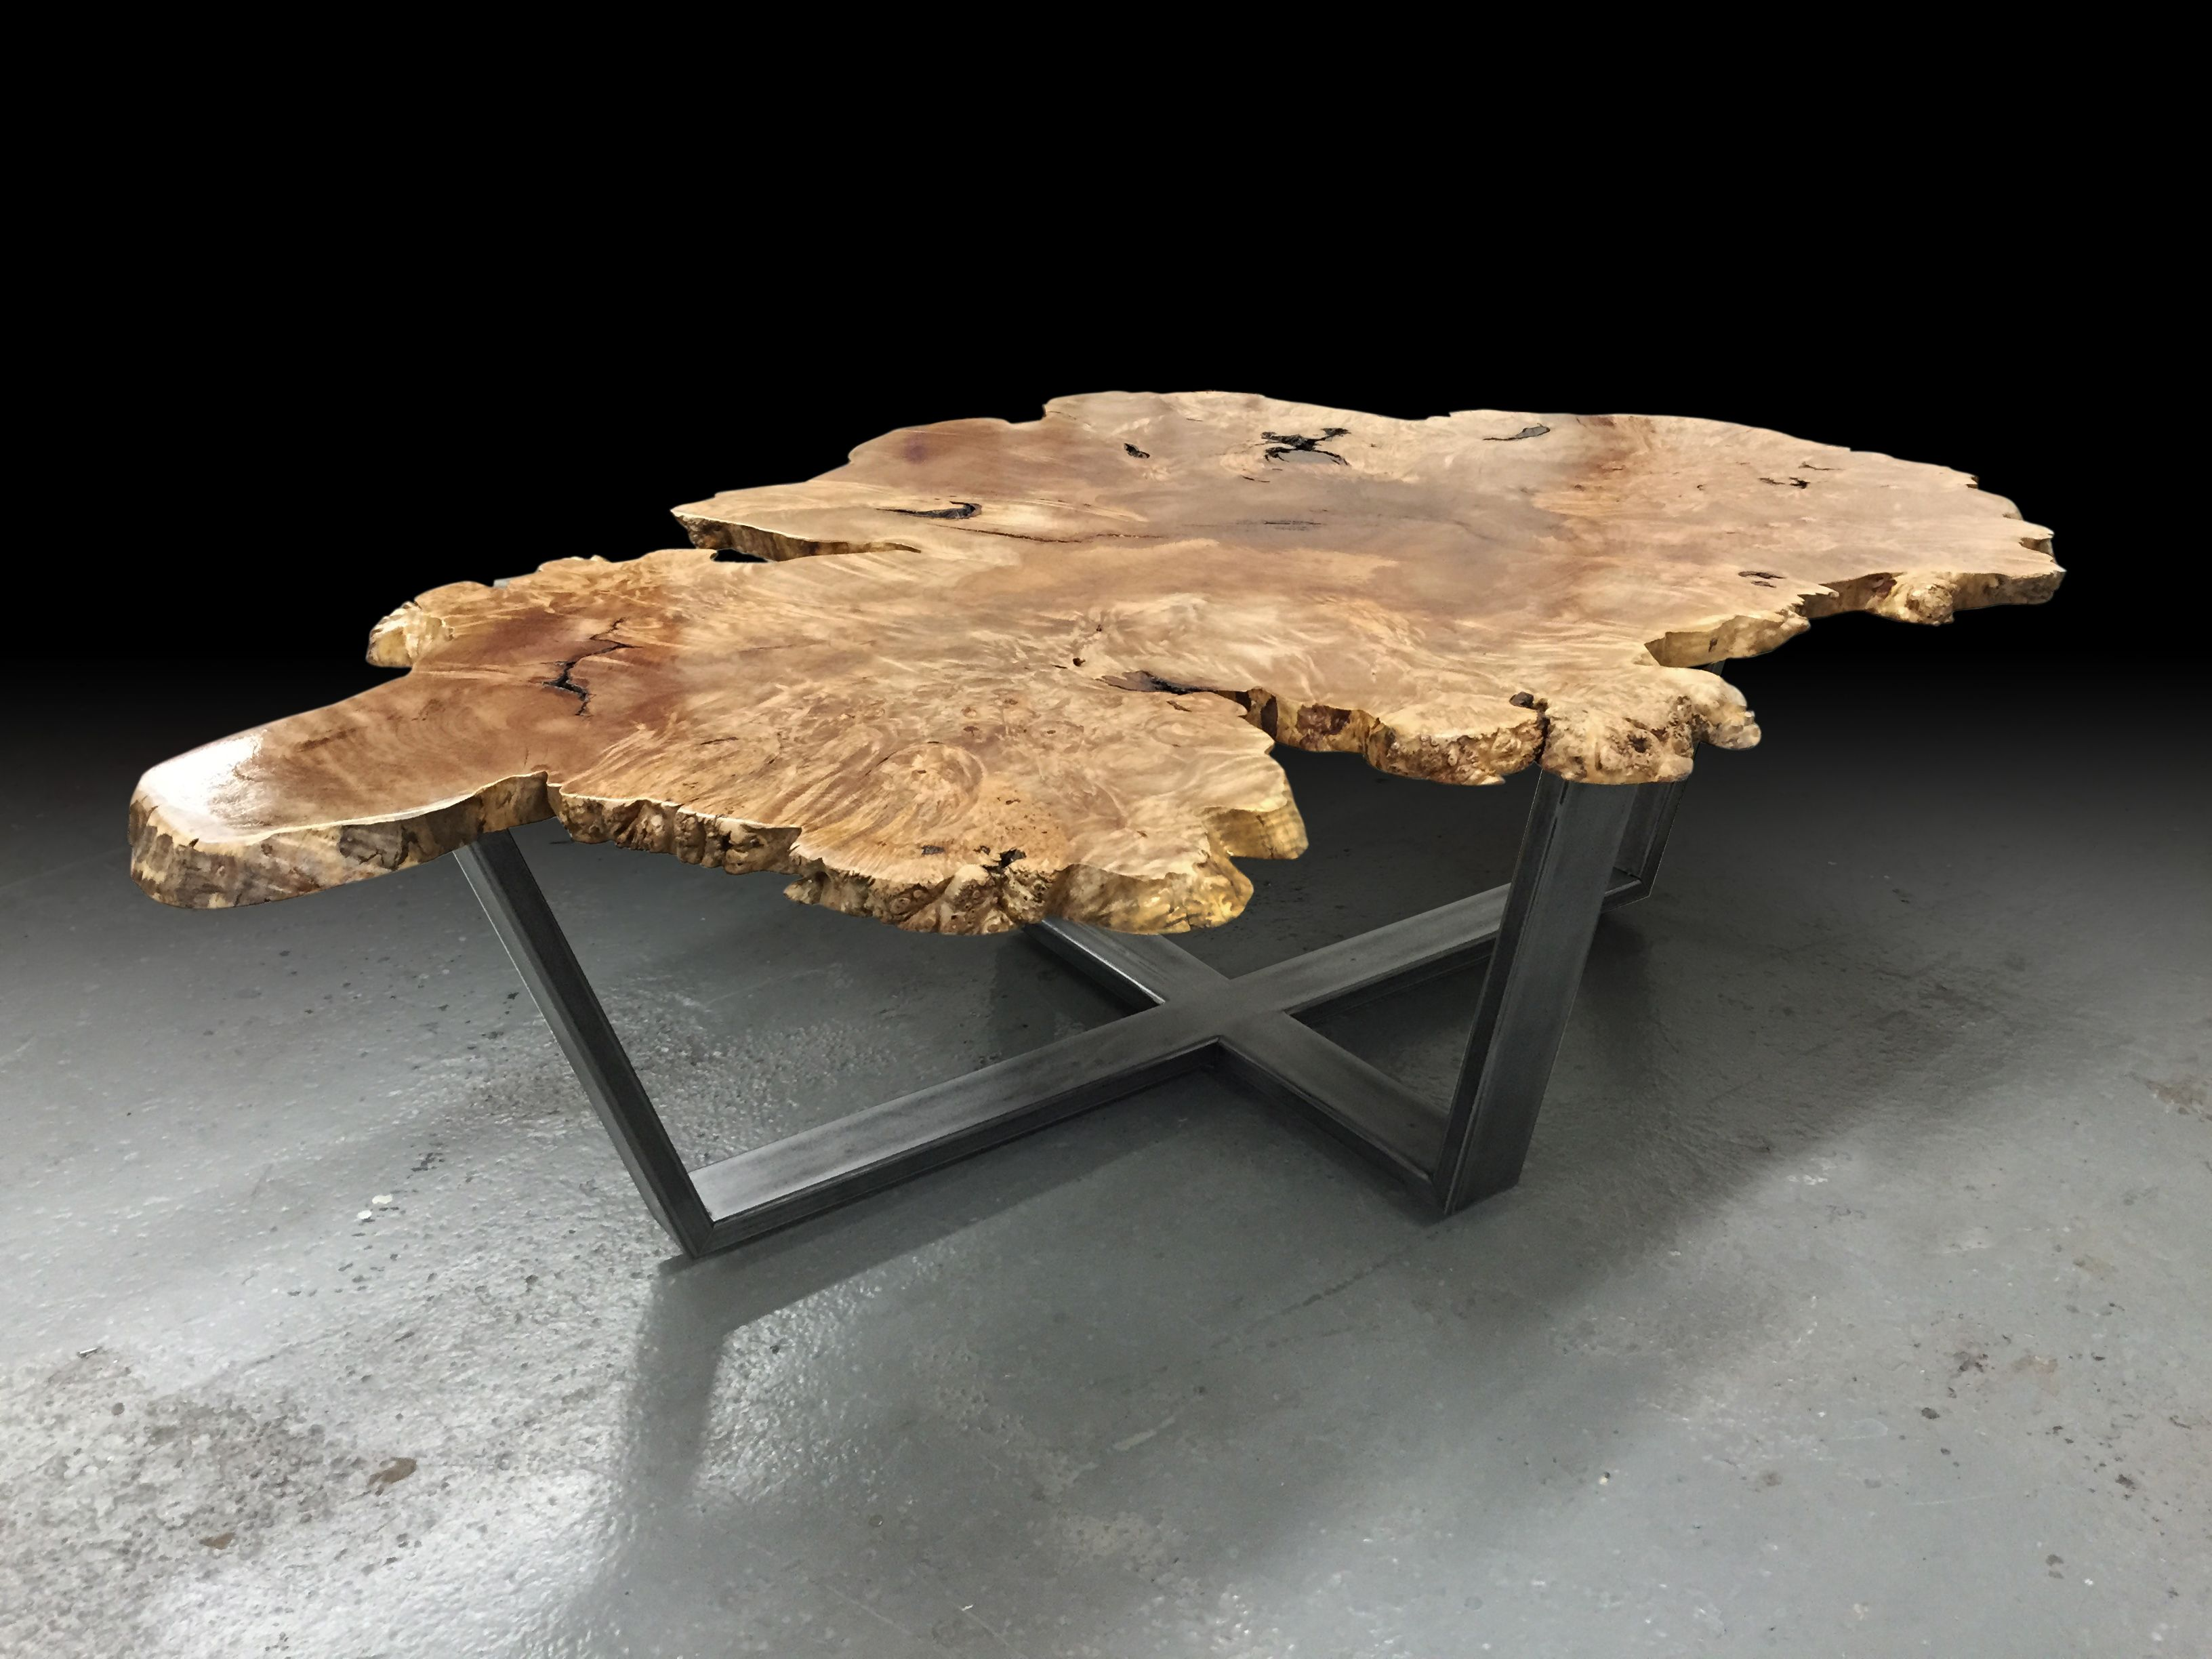 BURL COFFEE TABLE   Live Edge Custom Furniture And Architectural Elements  Made From Reclaimed Wood And